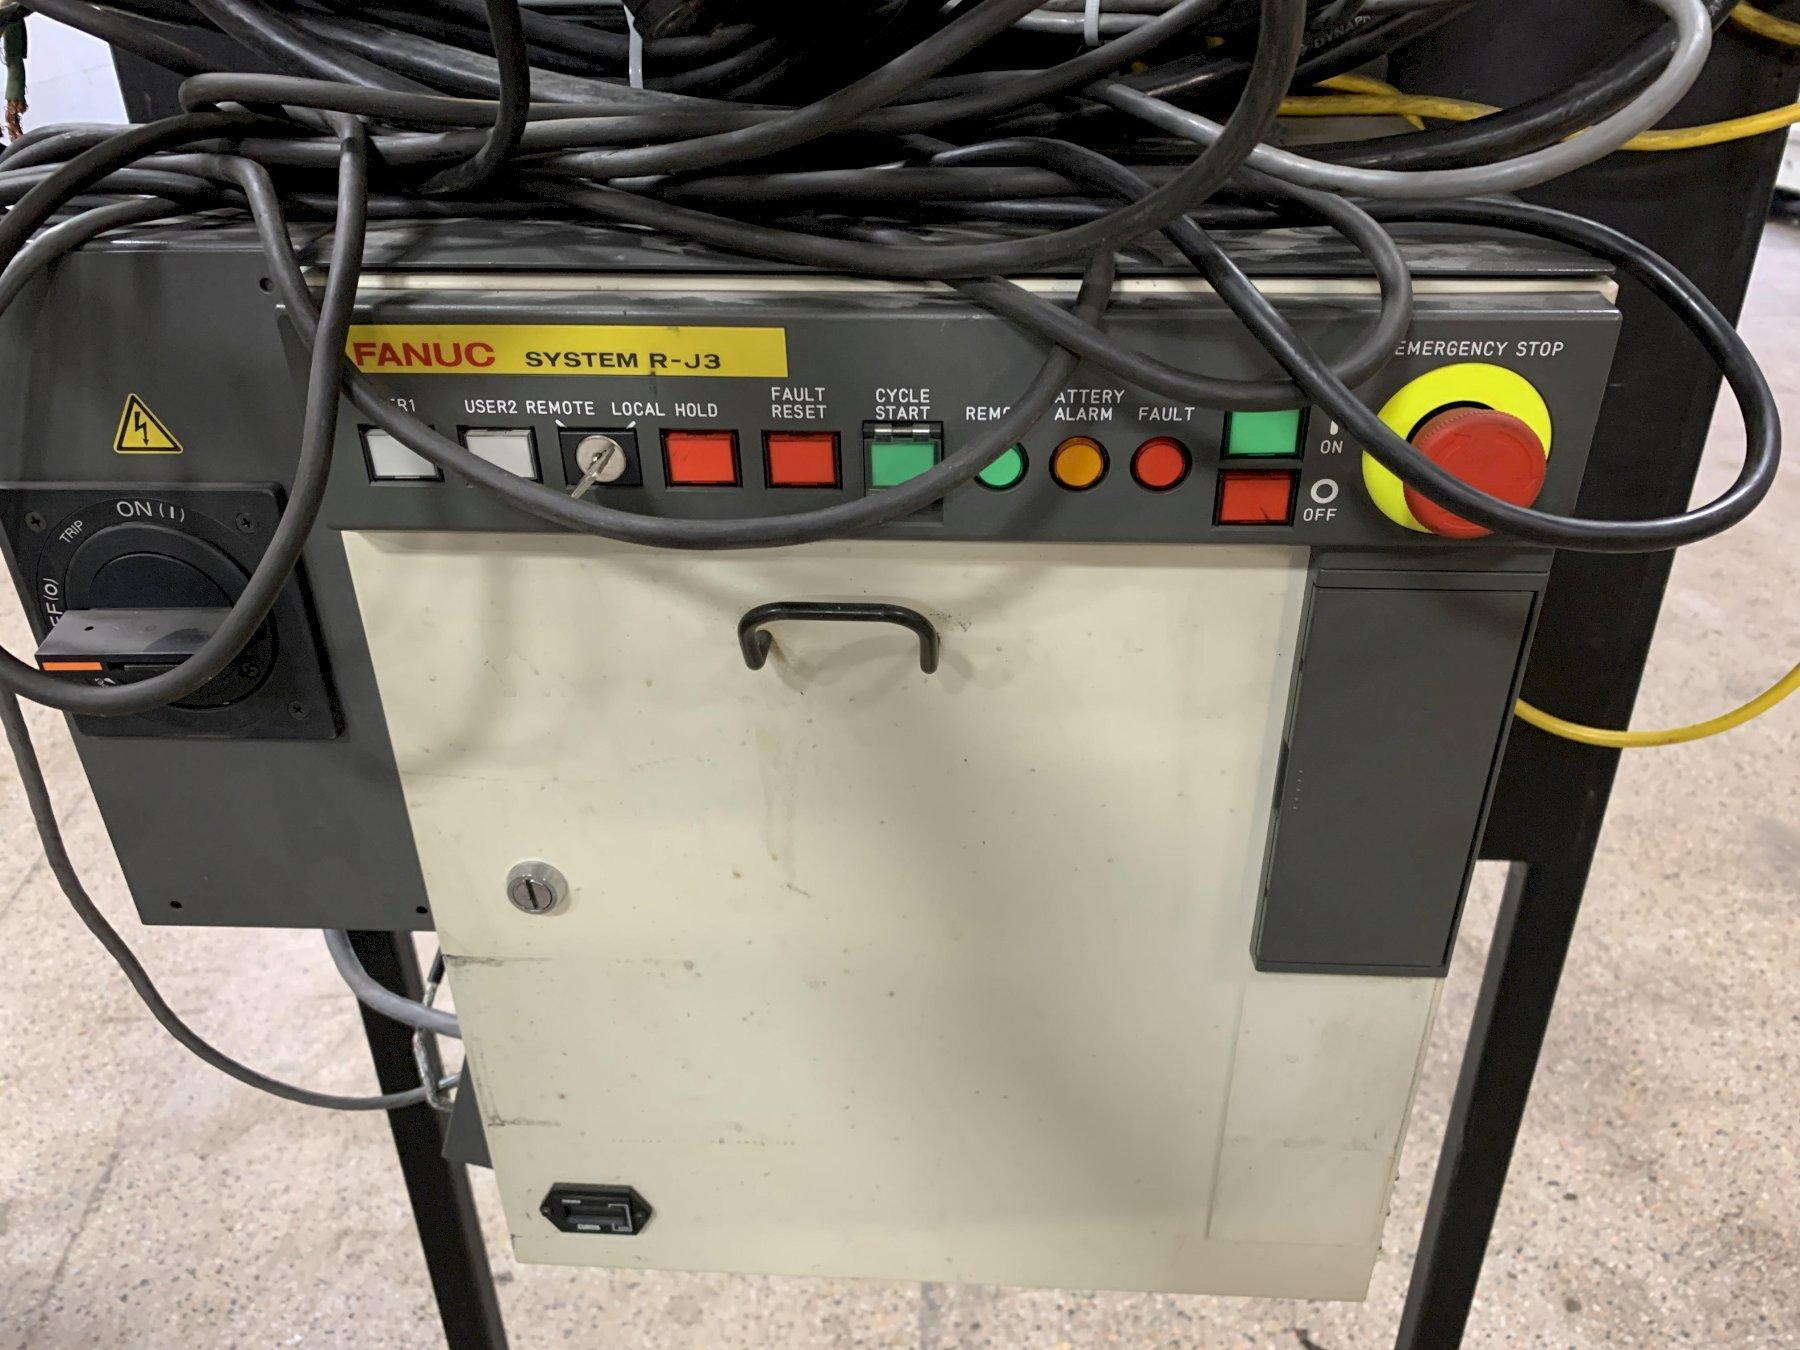 Fanuc ARC Mate 100i Robot with System R-J3 and Teach Pendant